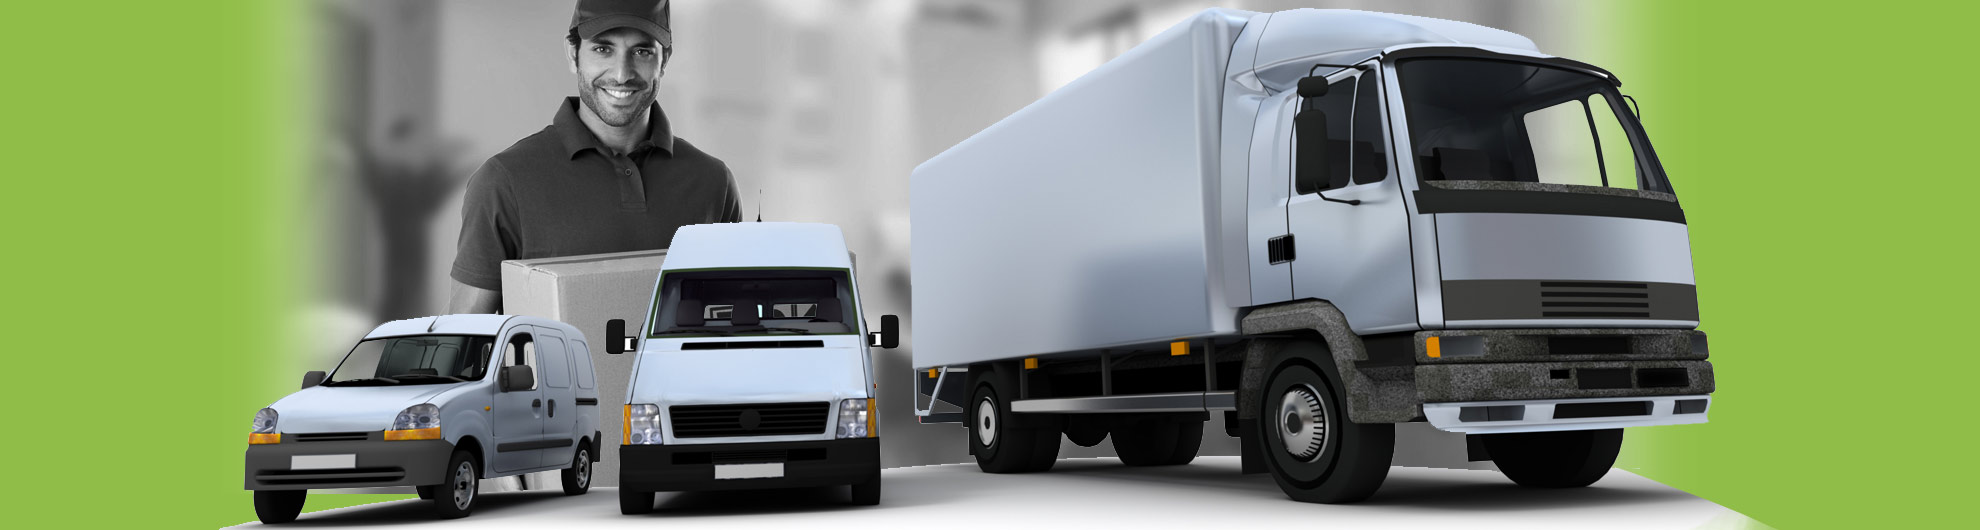 Zimbabwe  International Movers - Shipping Companies